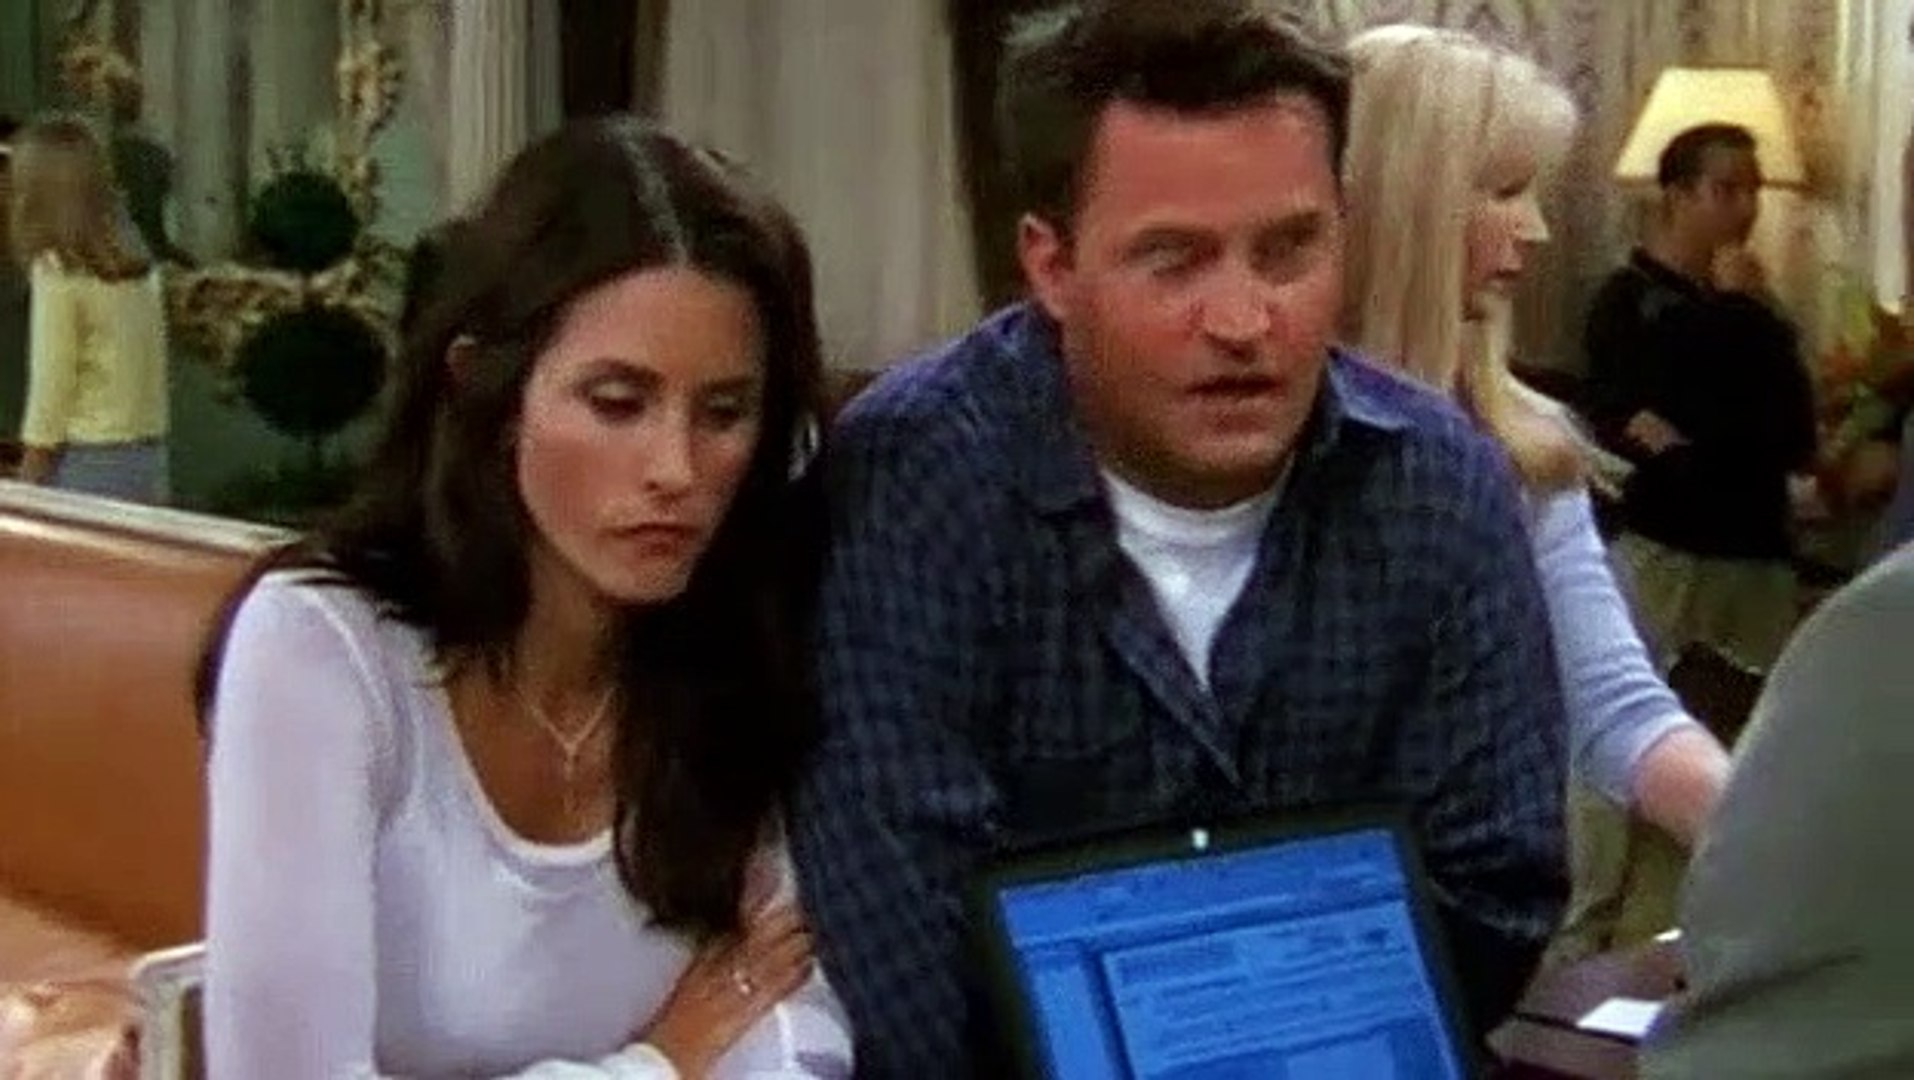 Friends S08E02 The One with the Red Sweater